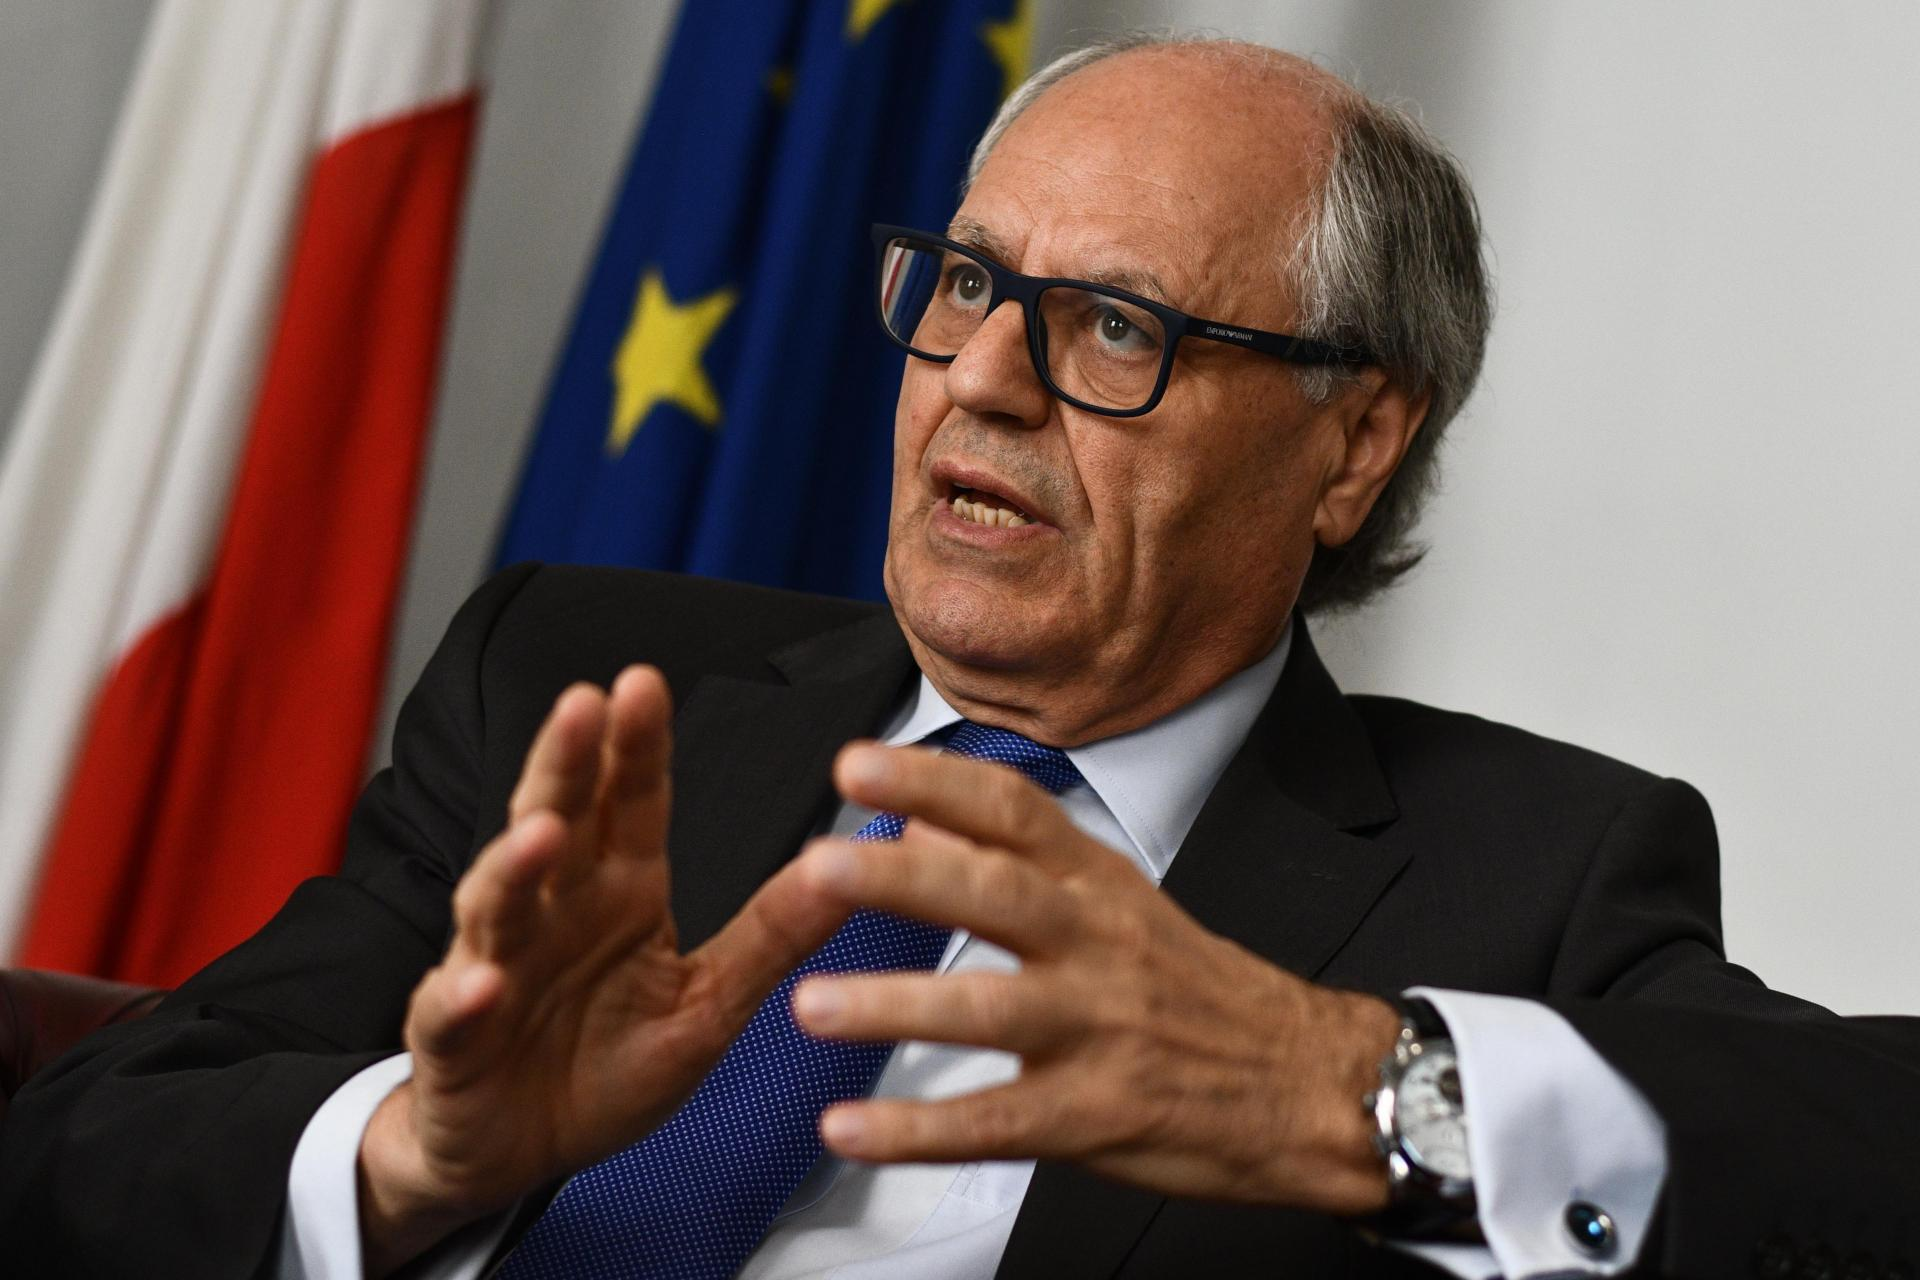 Edward Scicluna, who alleged that Schembri ran a 'kitchen cabinet' within the Muscat government. Photo: Jonathan Borg